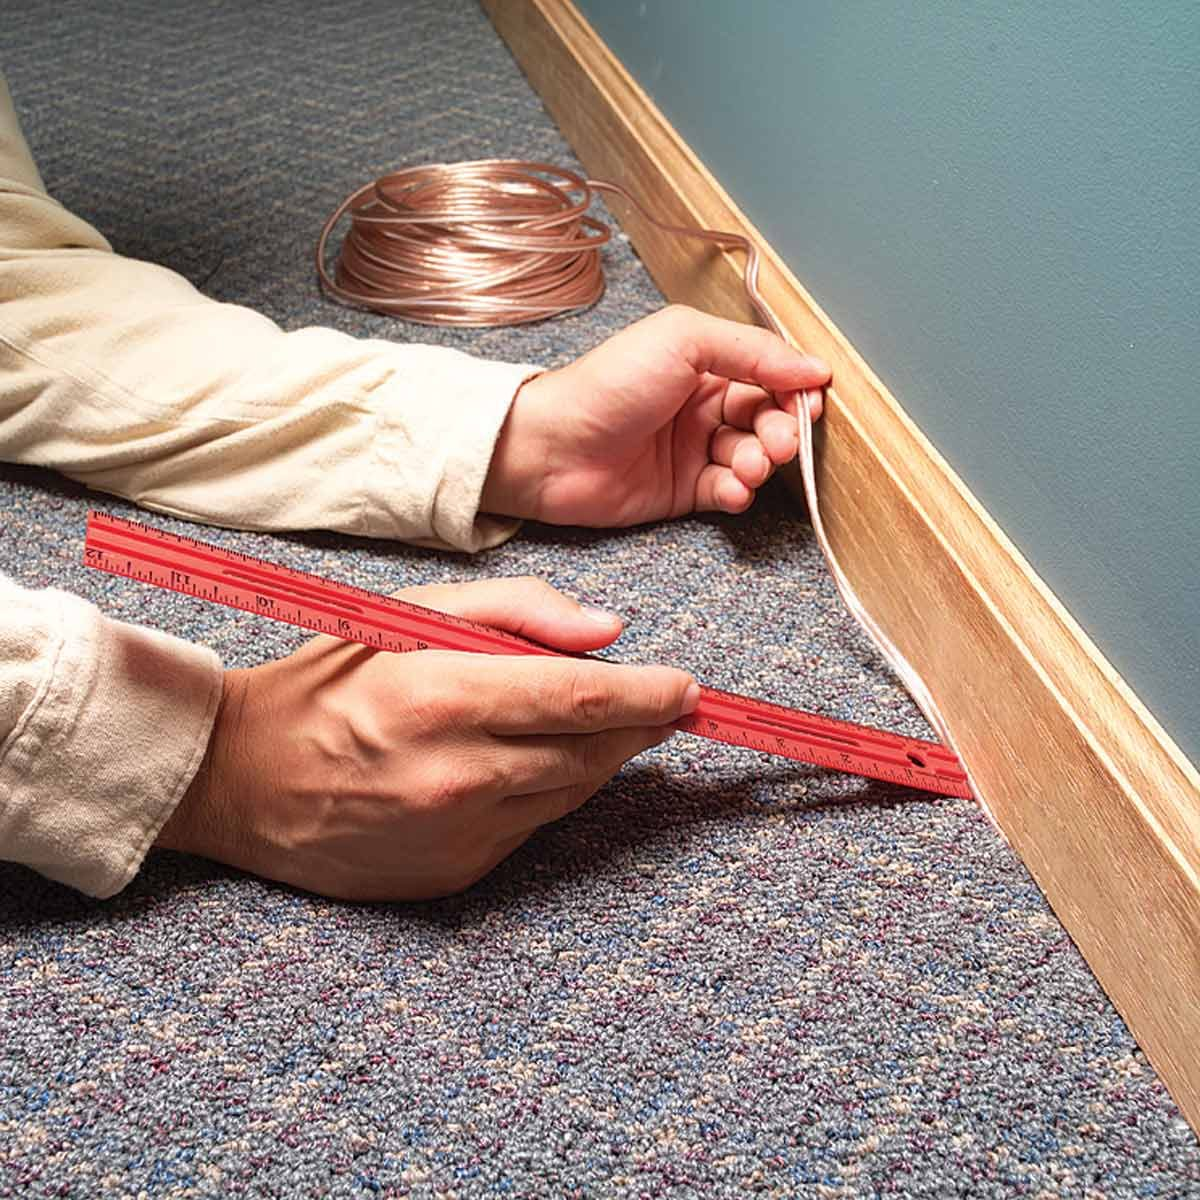 5 Brilliant Ways to Hide Wires in a Room Without Going Into ... on